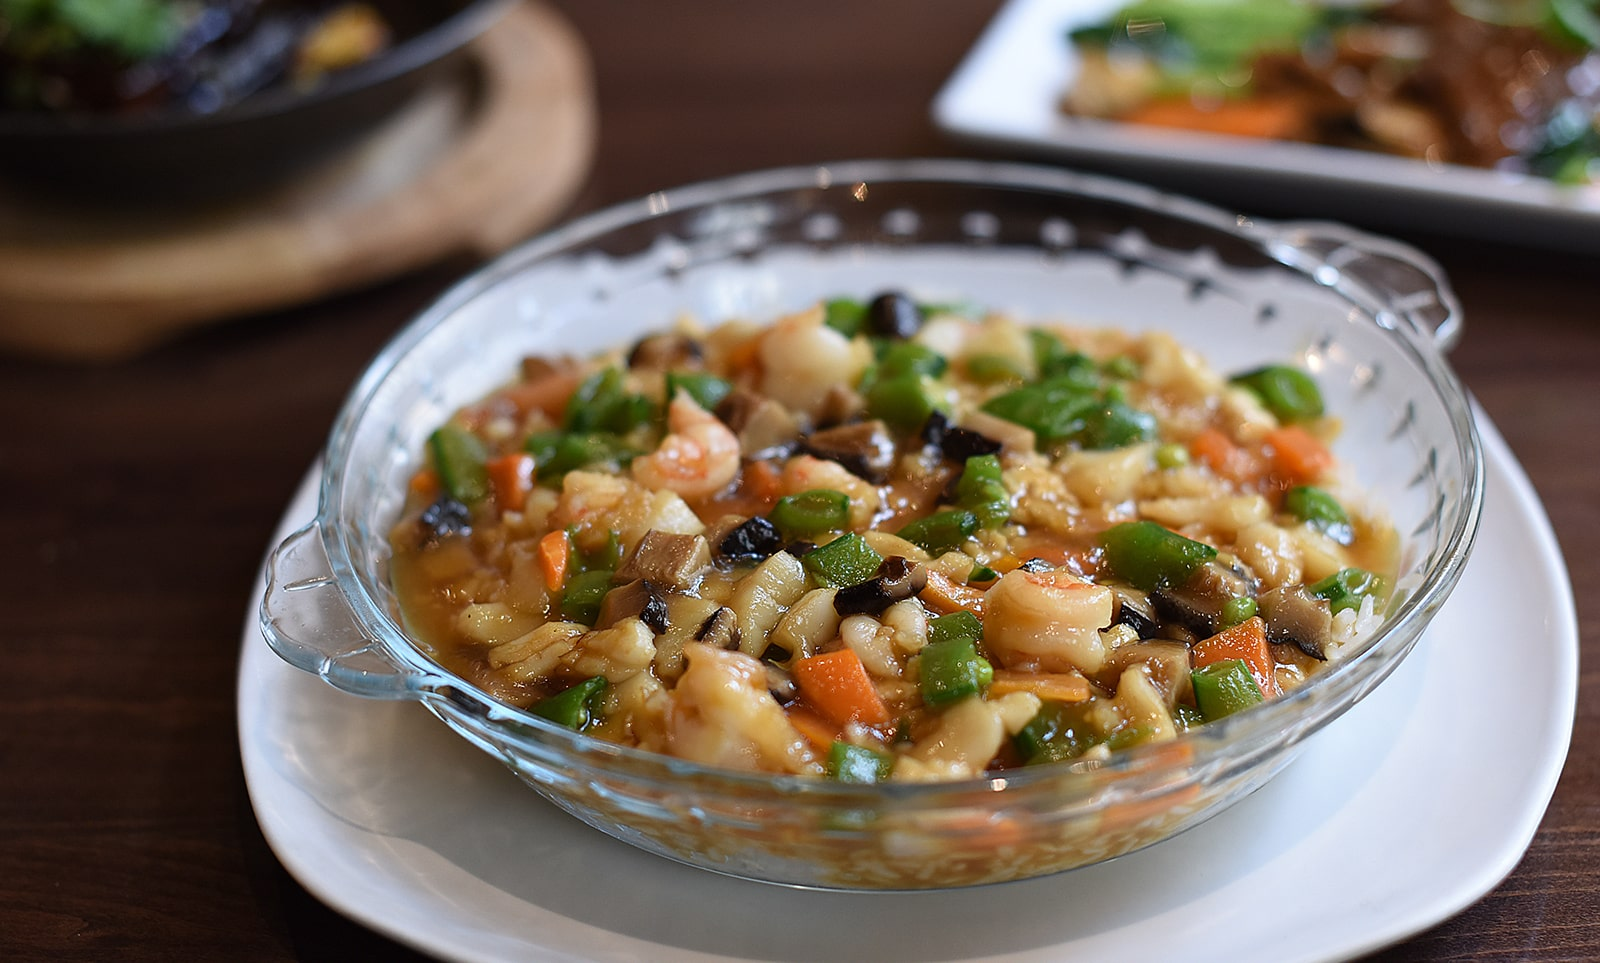 Fujian Fried Rice